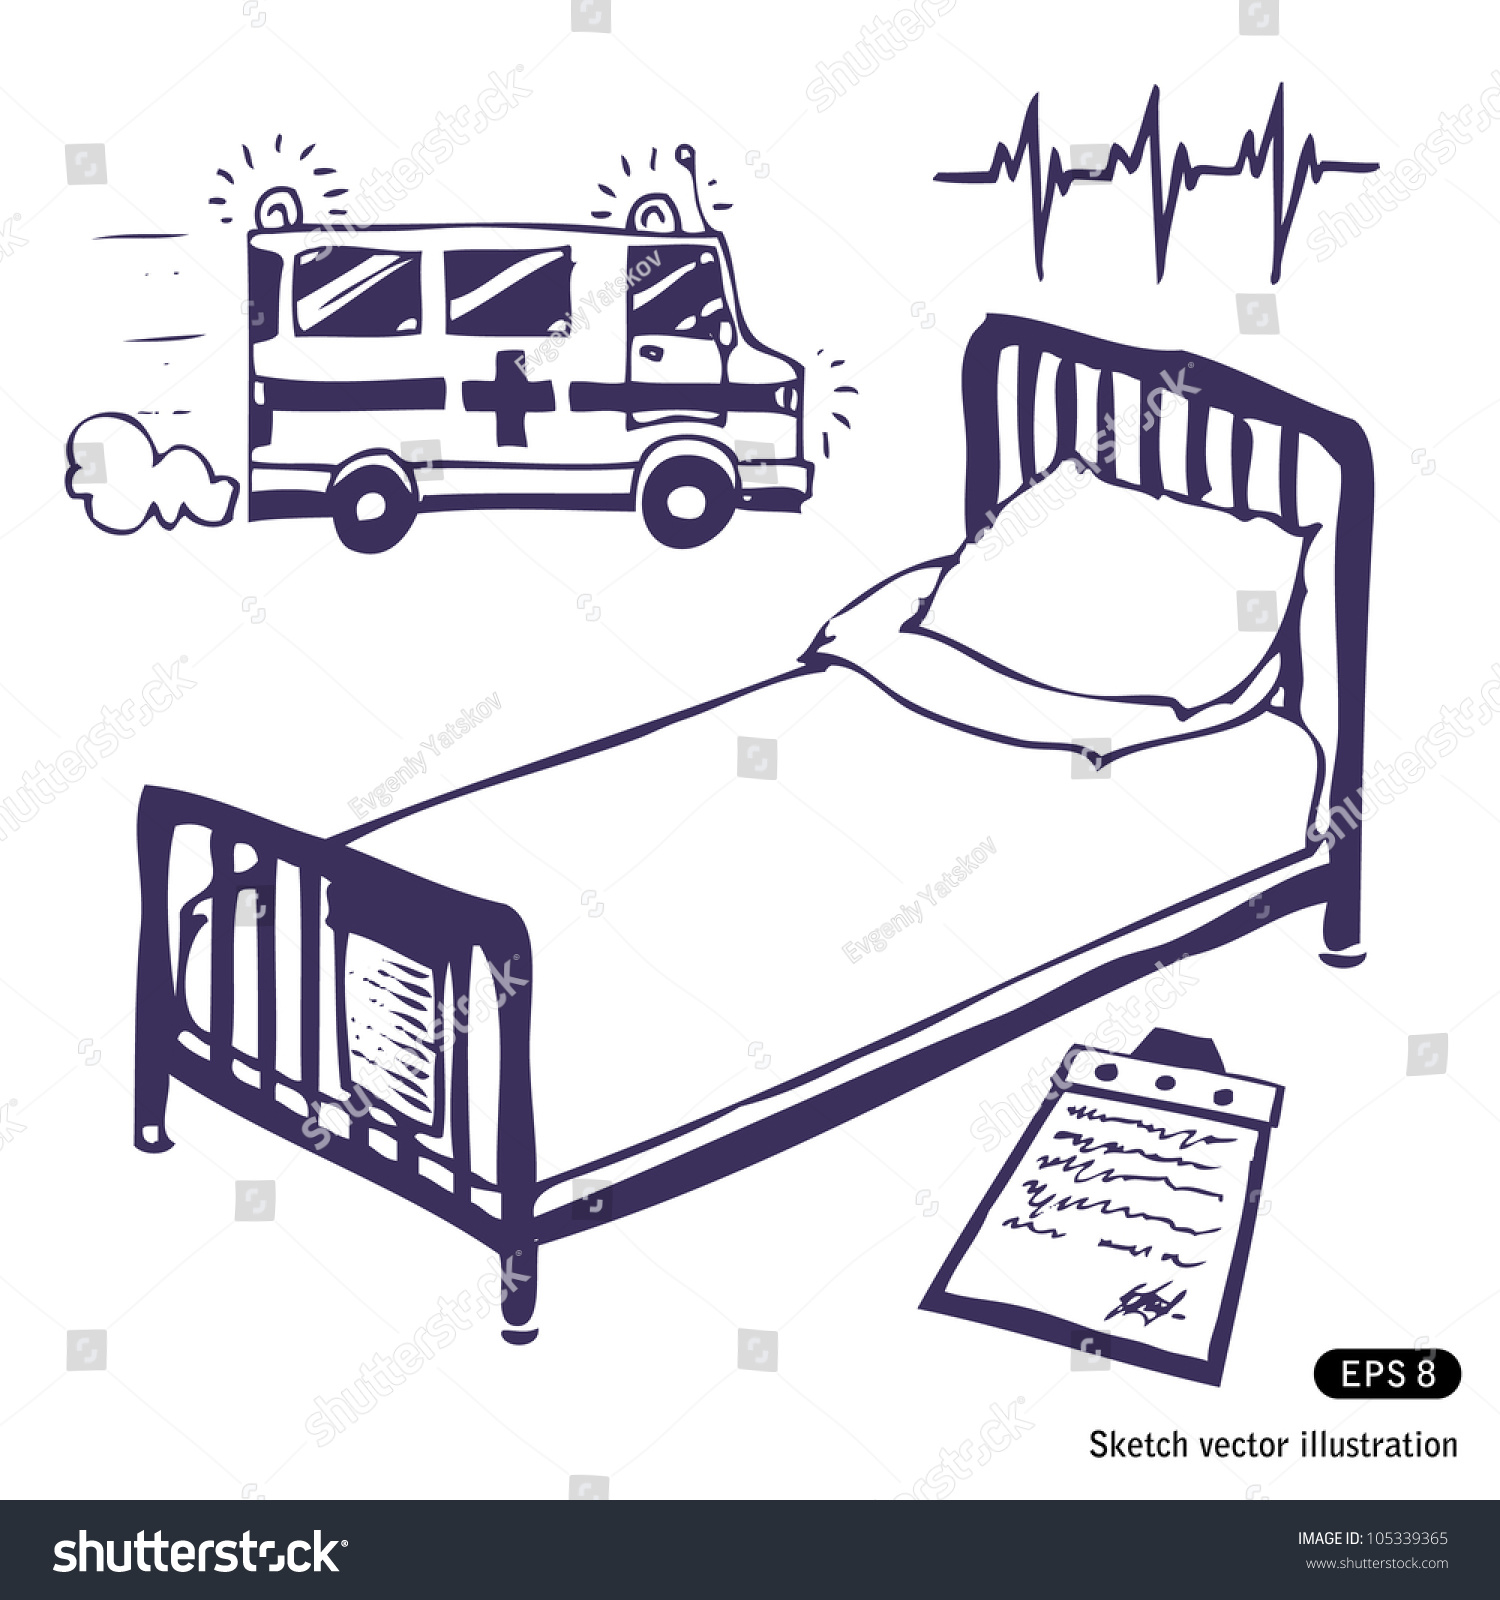 Shutterstock In Hospital Bed